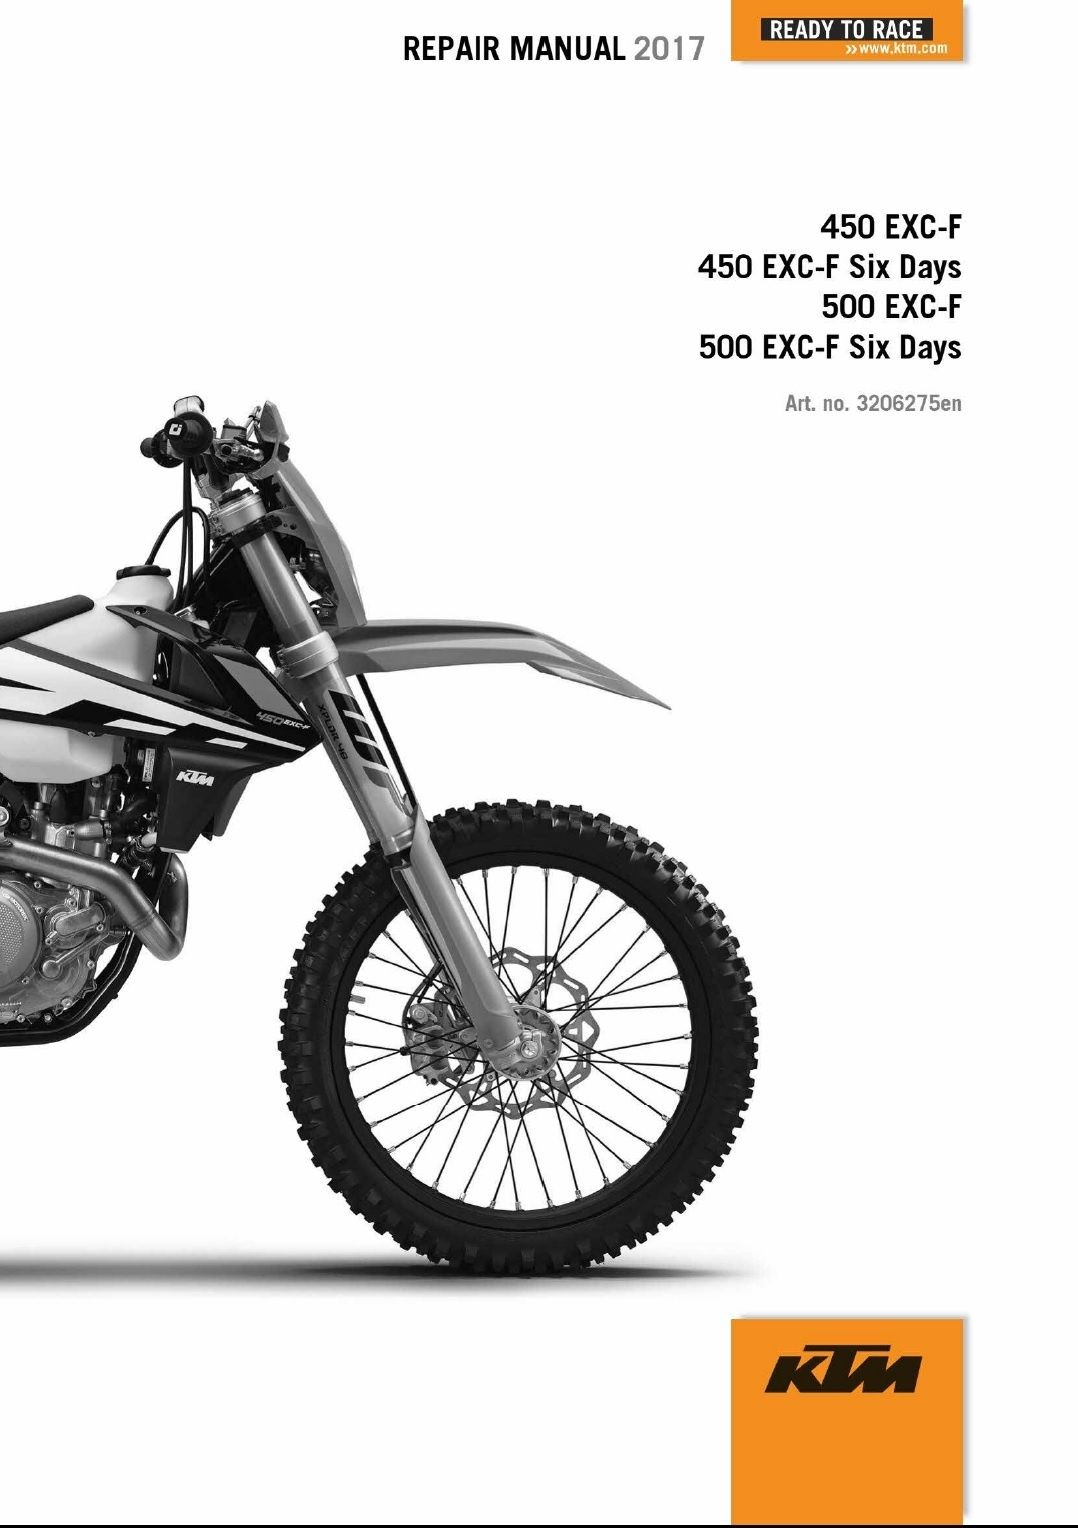 covers all models listed above all repairs a z this is a genuine ktm complete service repiar manual for 2017 ktm 450 500 exc f  [ 1078 x 1528 Pixel ]